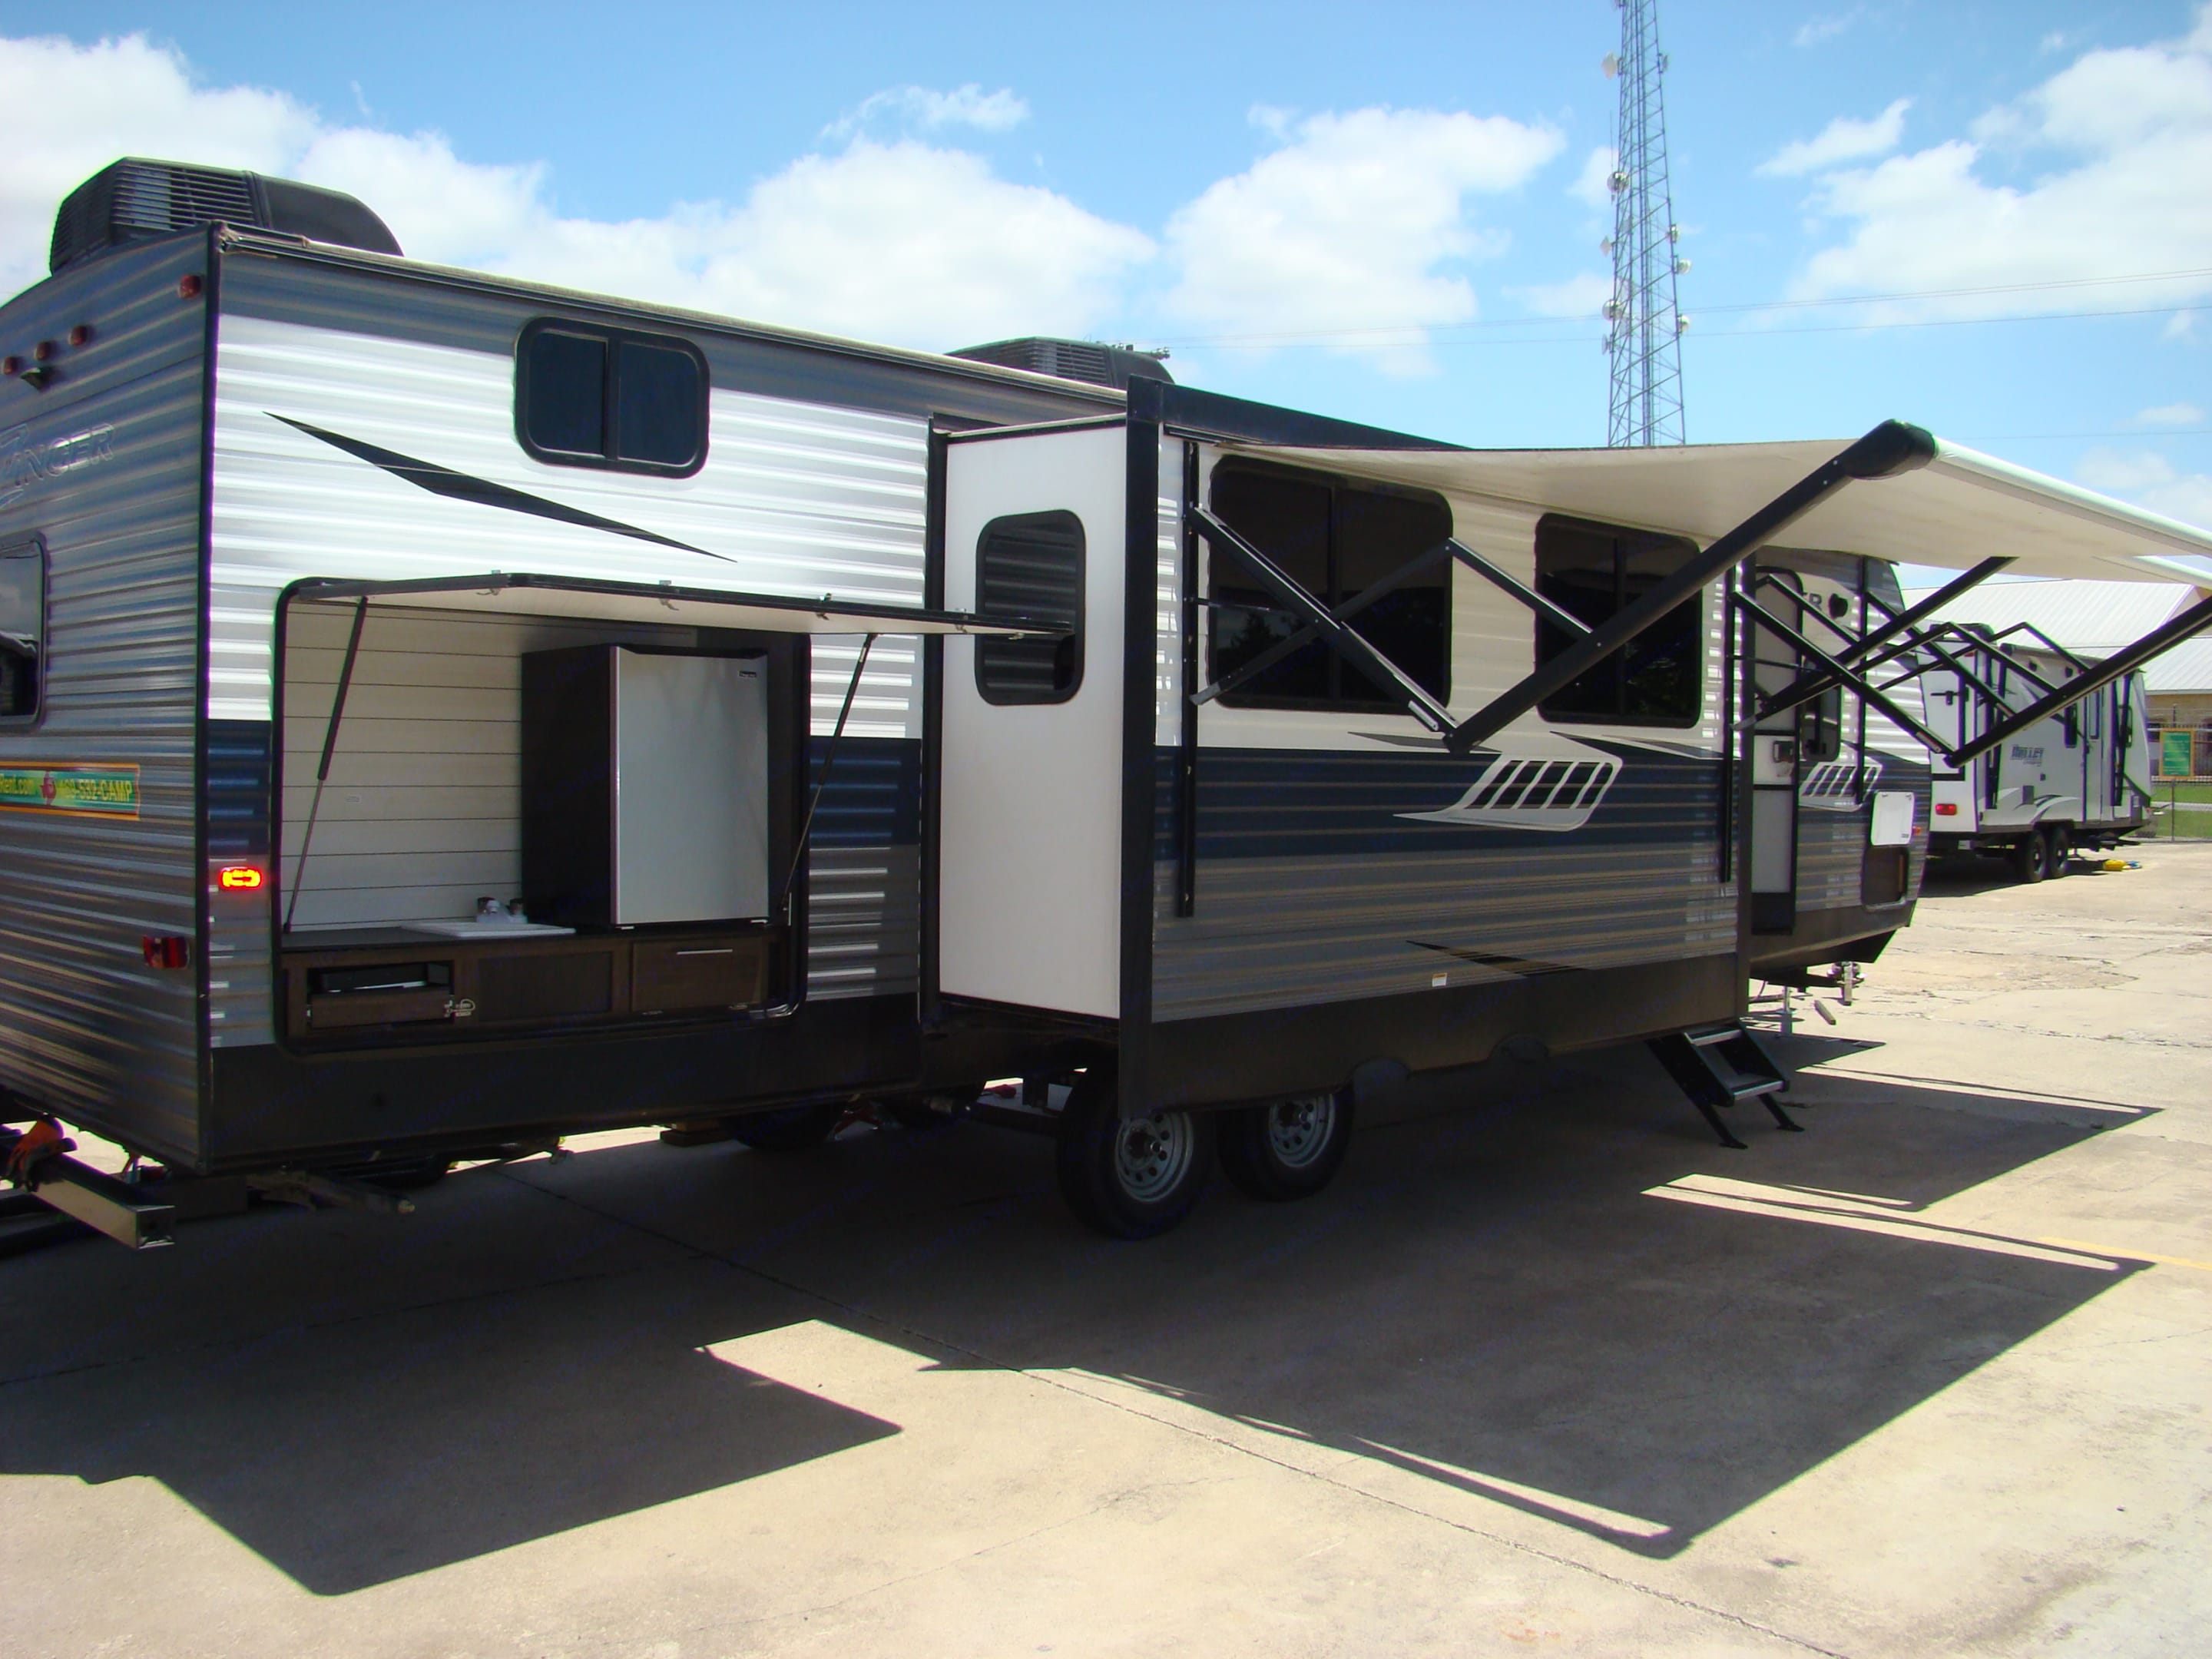 2 slide outs, 2 kitchens, 2 bathrooms, 2 awnings. Crossroads Zinger 2019